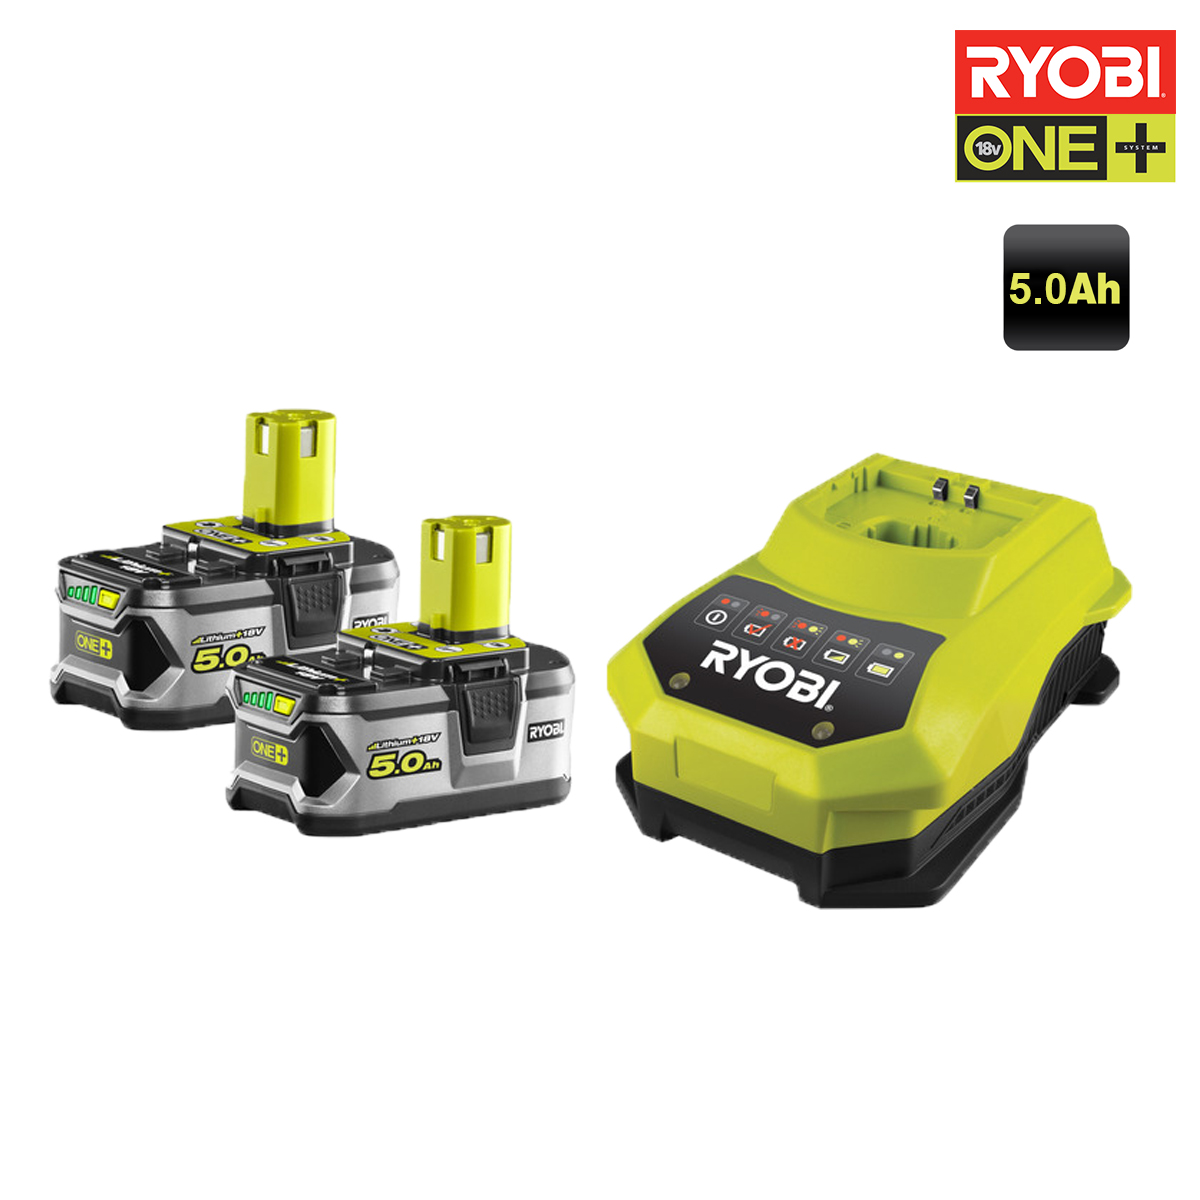 ryobi pack de 2 batteries 18v oneplus 5 0ah lithium ion. Black Bedroom Furniture Sets. Home Design Ideas